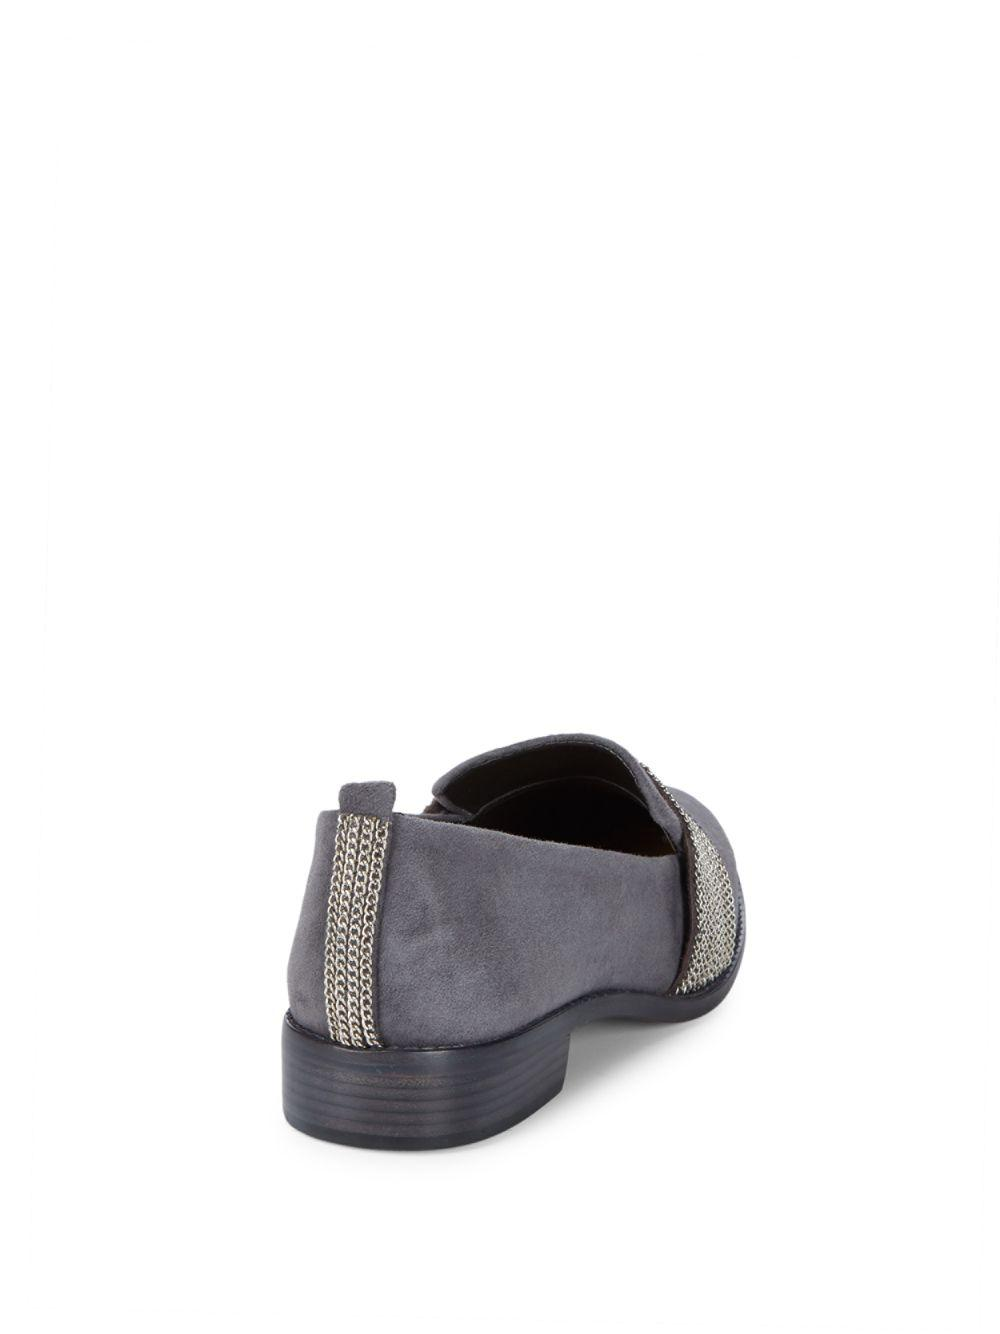 53749d0c8dd Lyst - Schutz Chained Loafers in Gray - Save 21%